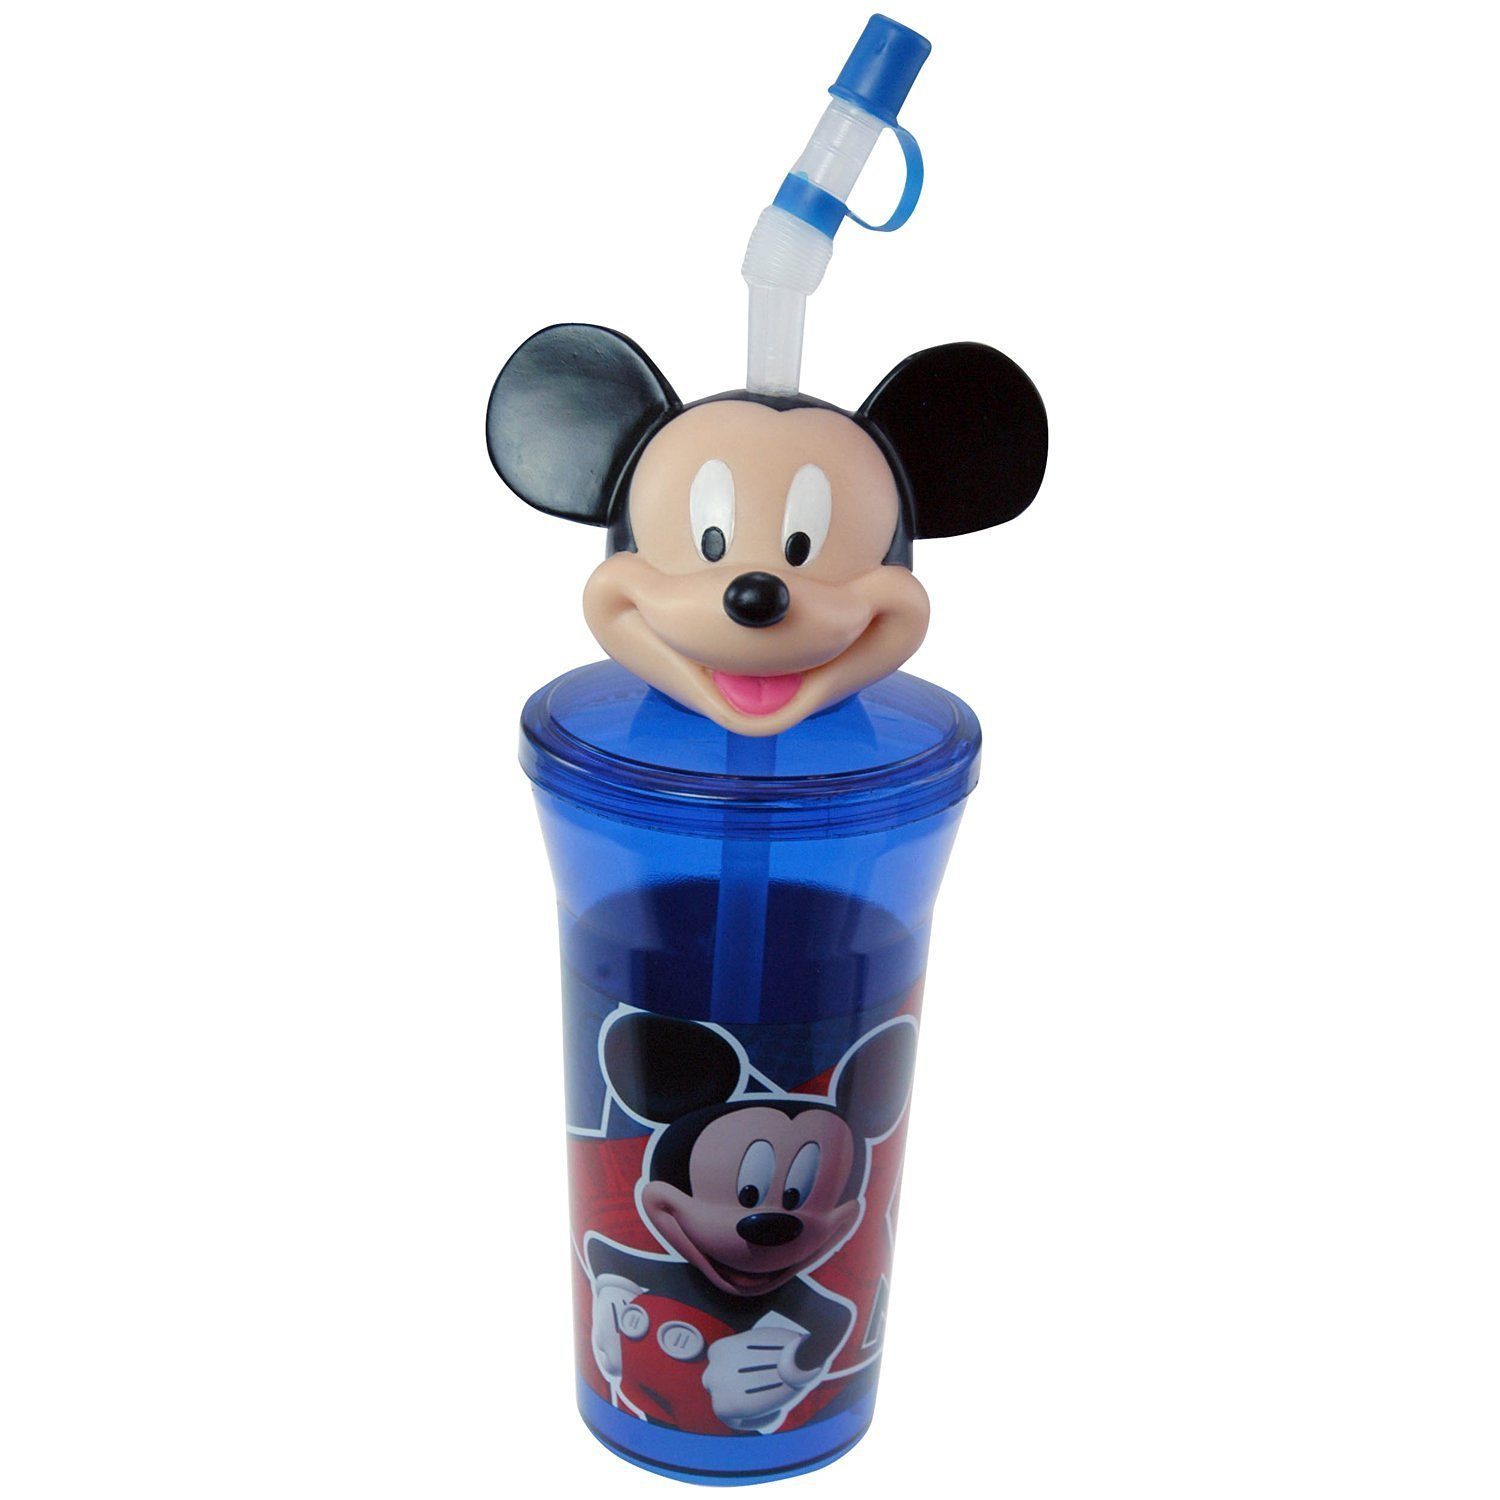 Bottle Tumbler Toys Perfect for Birthday Party Favor Goodie bags - Mickey